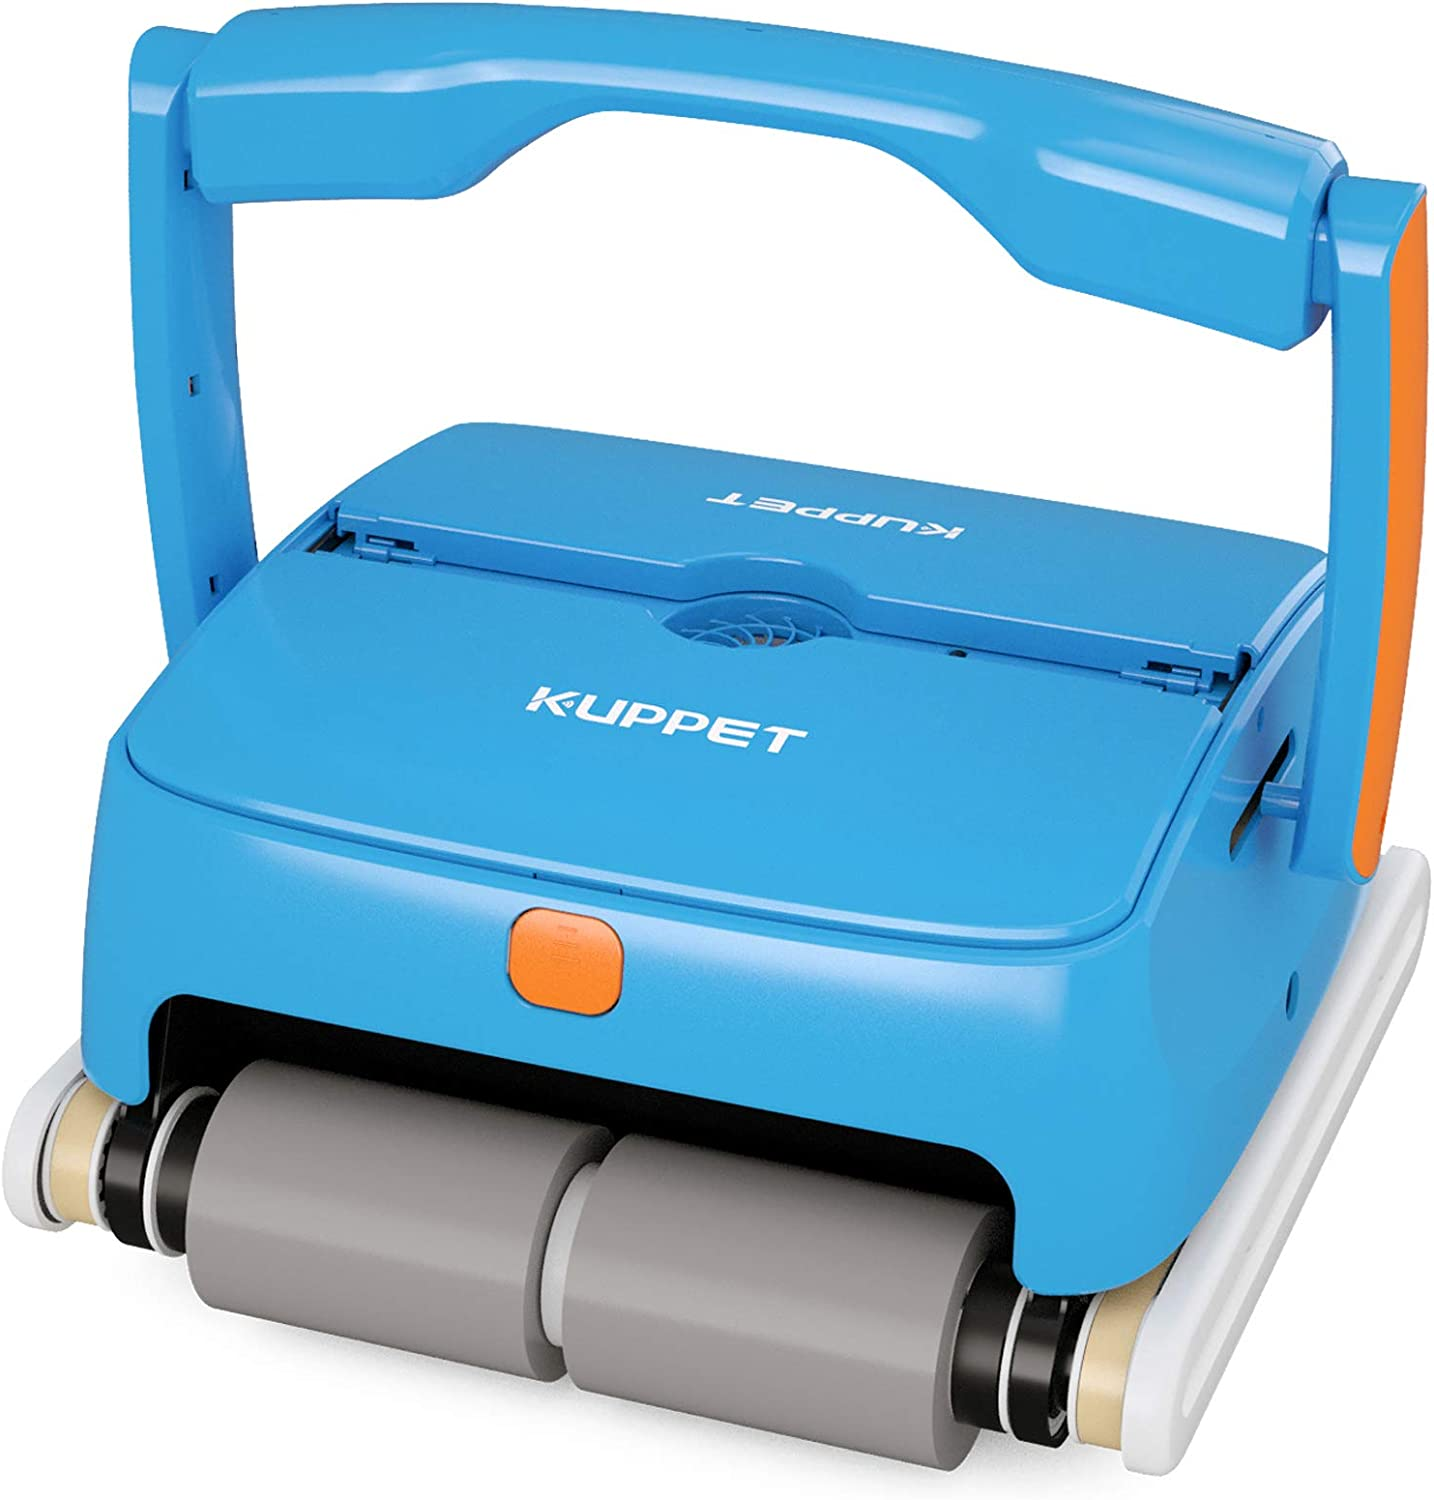 Kenwell Cordless Automatic Pool Cleaner - Robotic Pool Cleaner with 7800mAh Rechargeable Battery